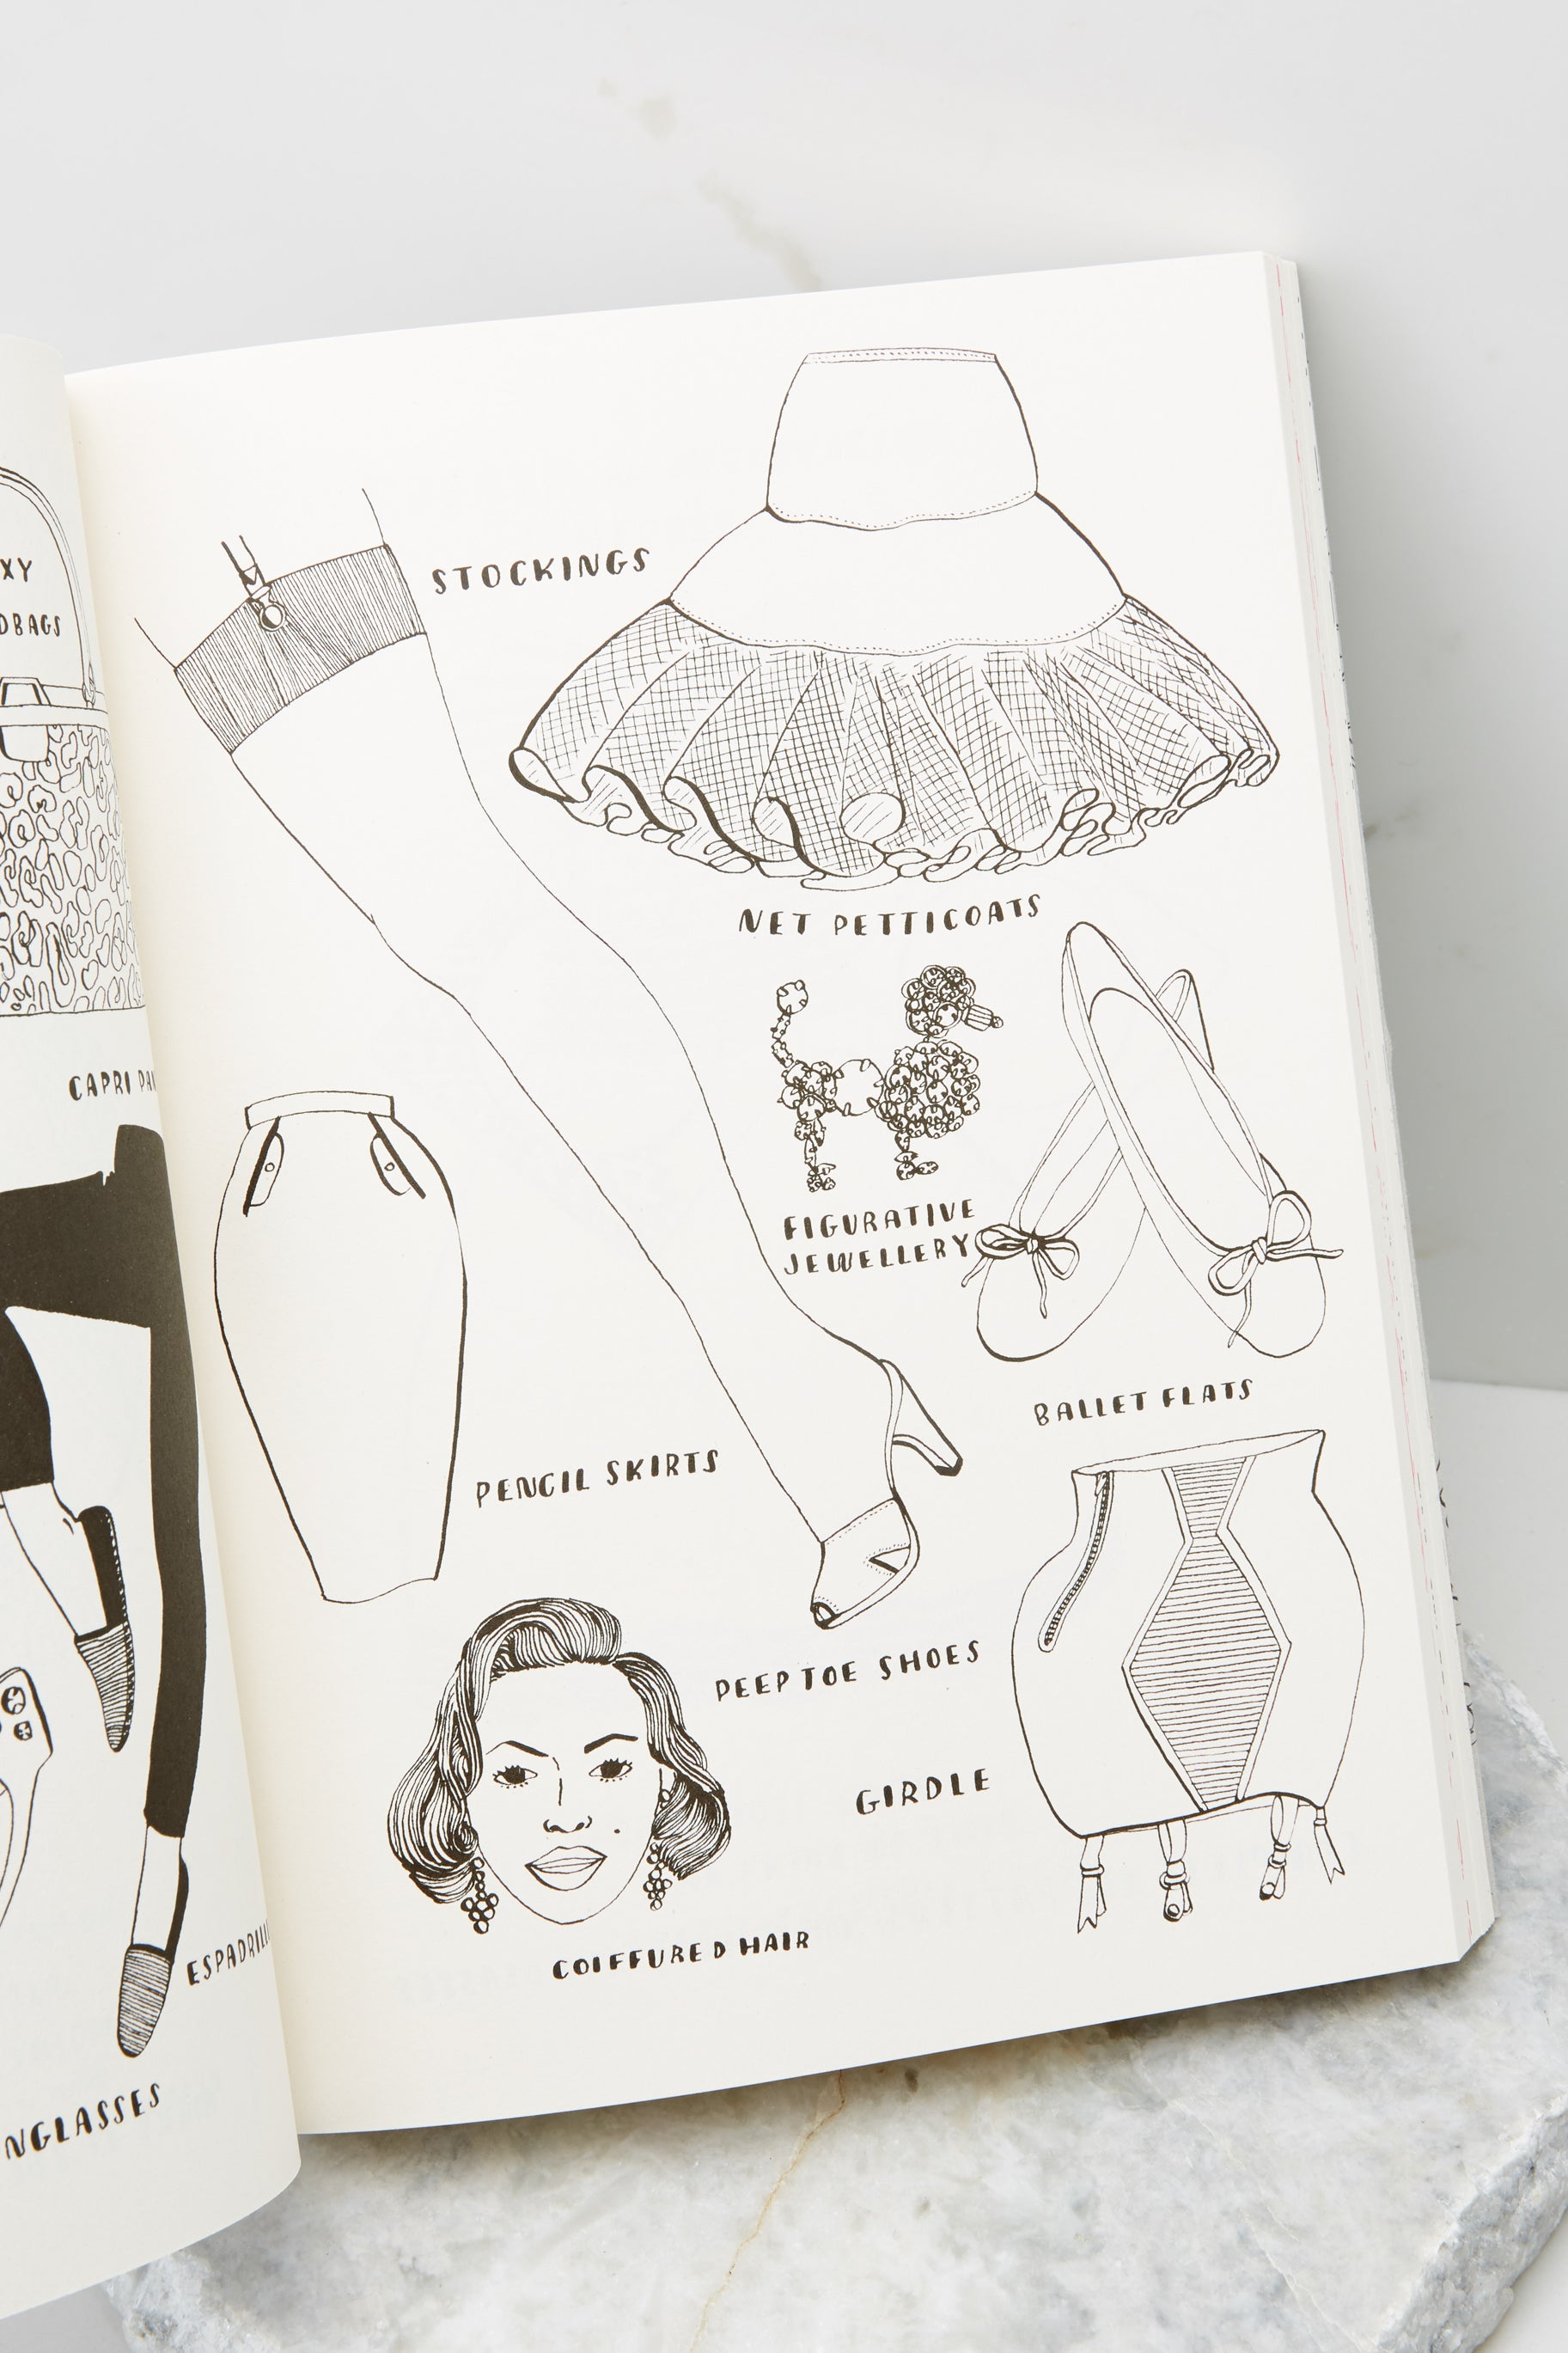 2 My Even More Wonderful World Of Fashion Activity Book at reddress.com